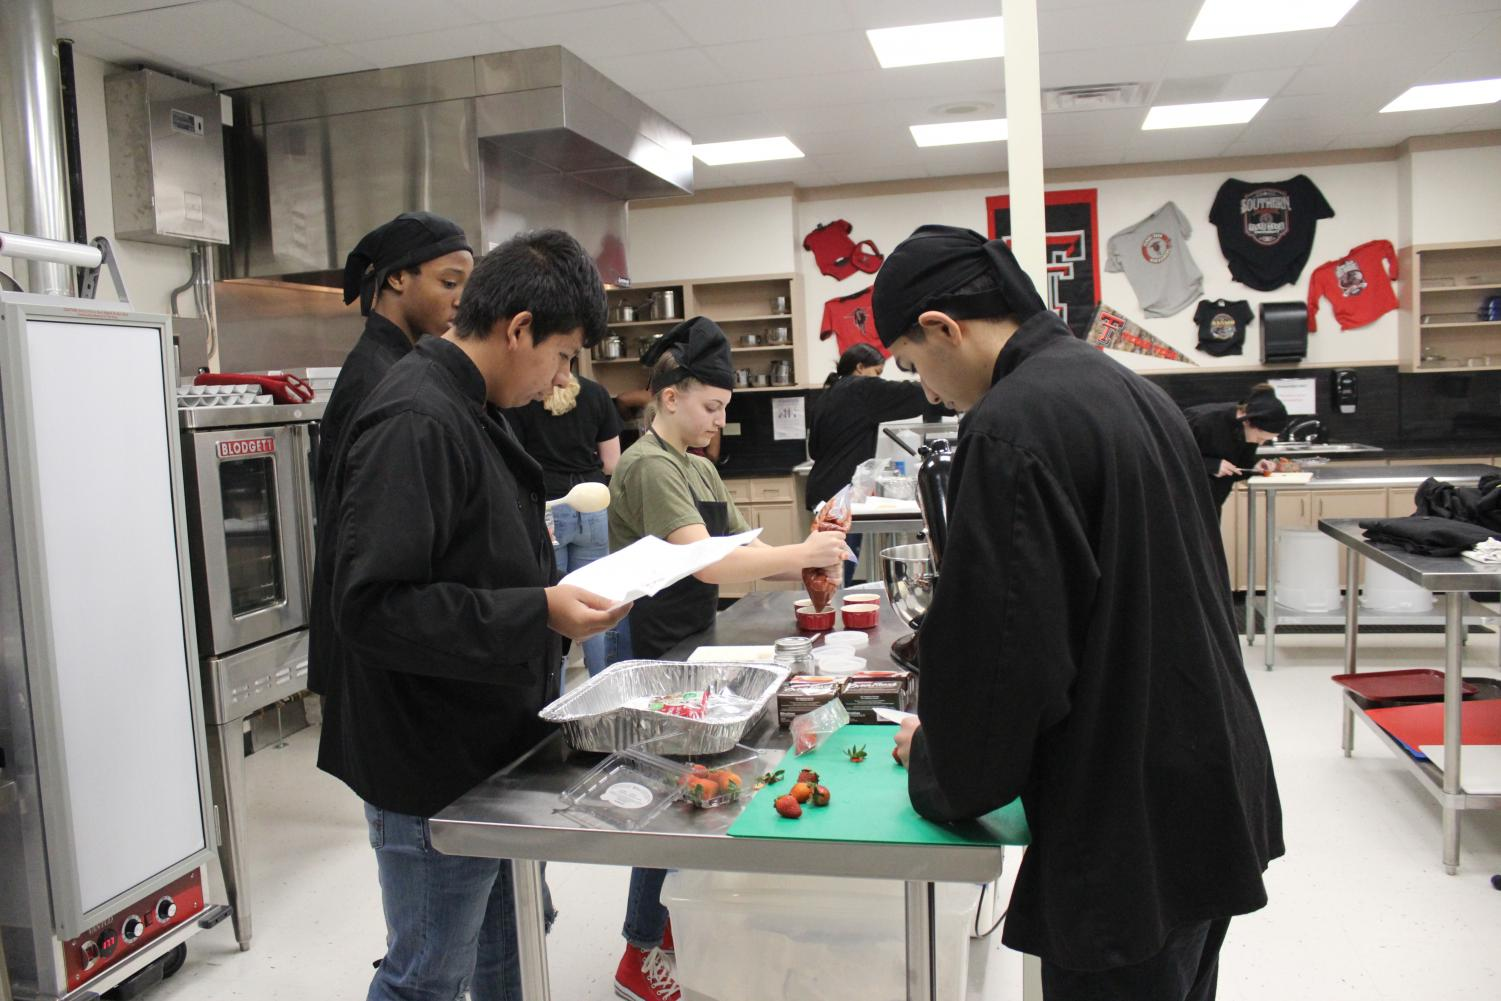 From left to right: sophomores Eric Lyle, Juan Balderas, Abby Coleman, and Deandre Rosales prepare the food for the Iron Chef Challenge. Photo by Naydelin Espinoza.